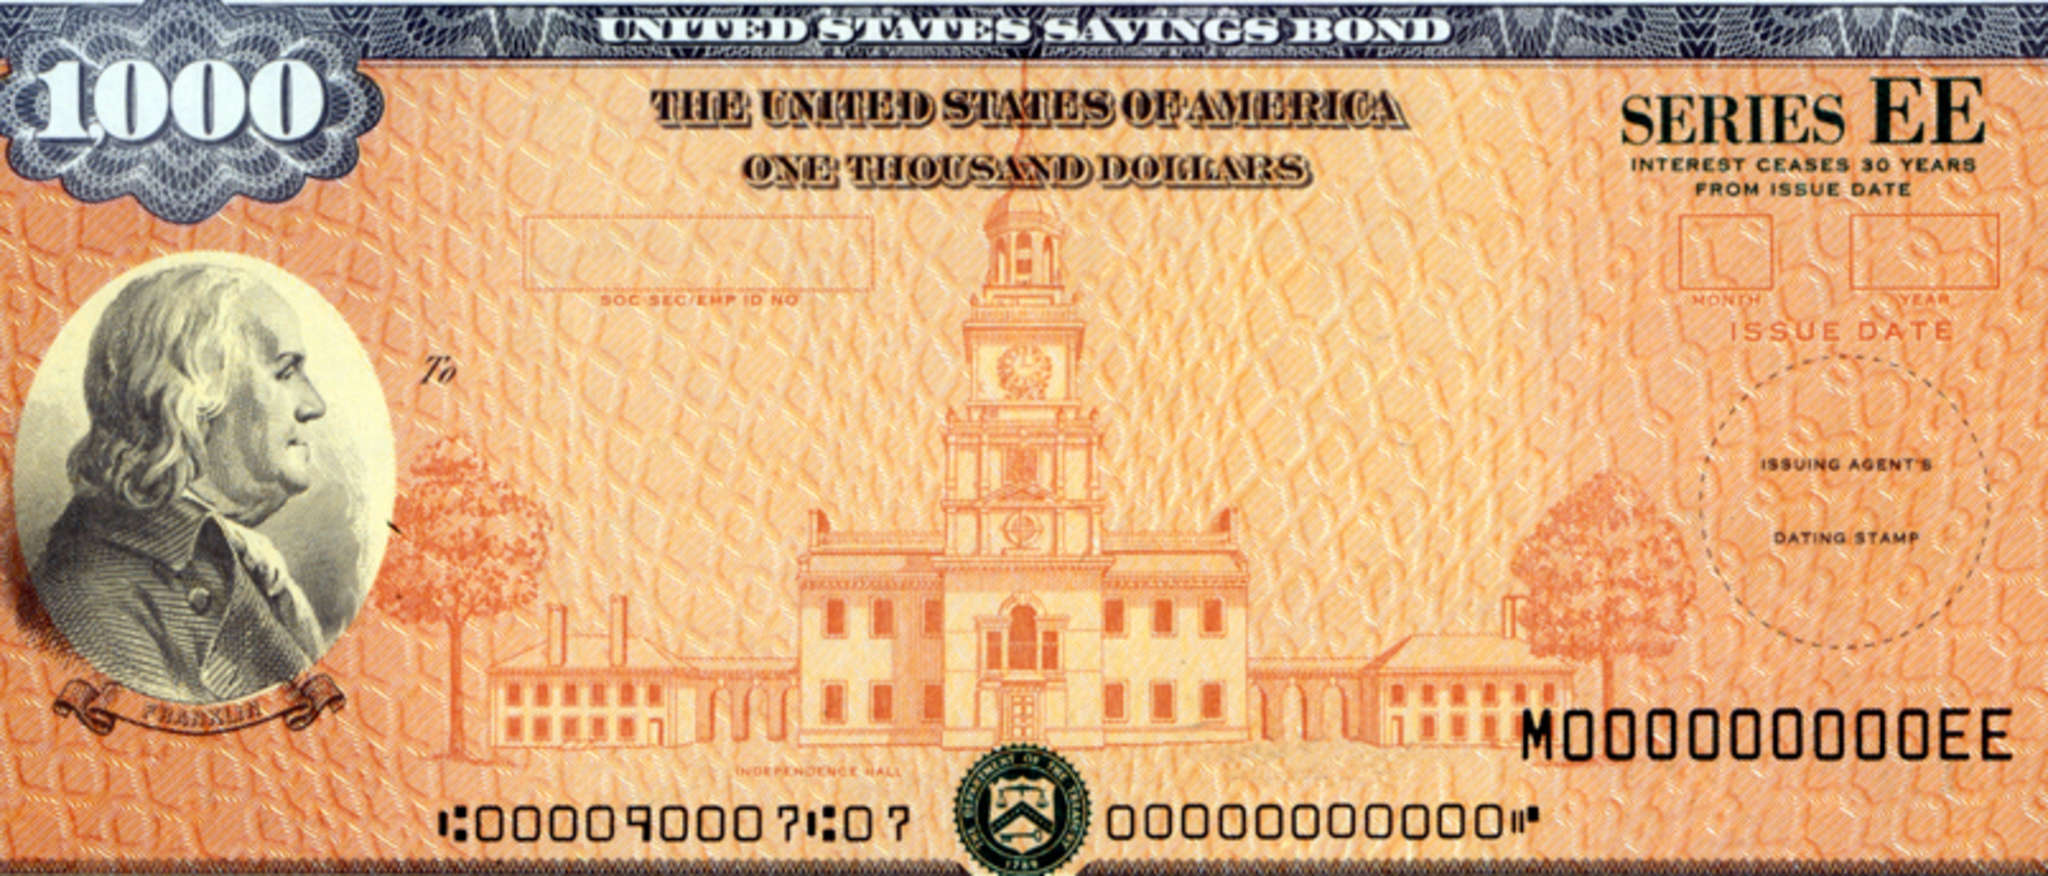 Series EE savings bonds from 1986 will stop earning interest in the coming year, and those bonds will need to be redeemed.